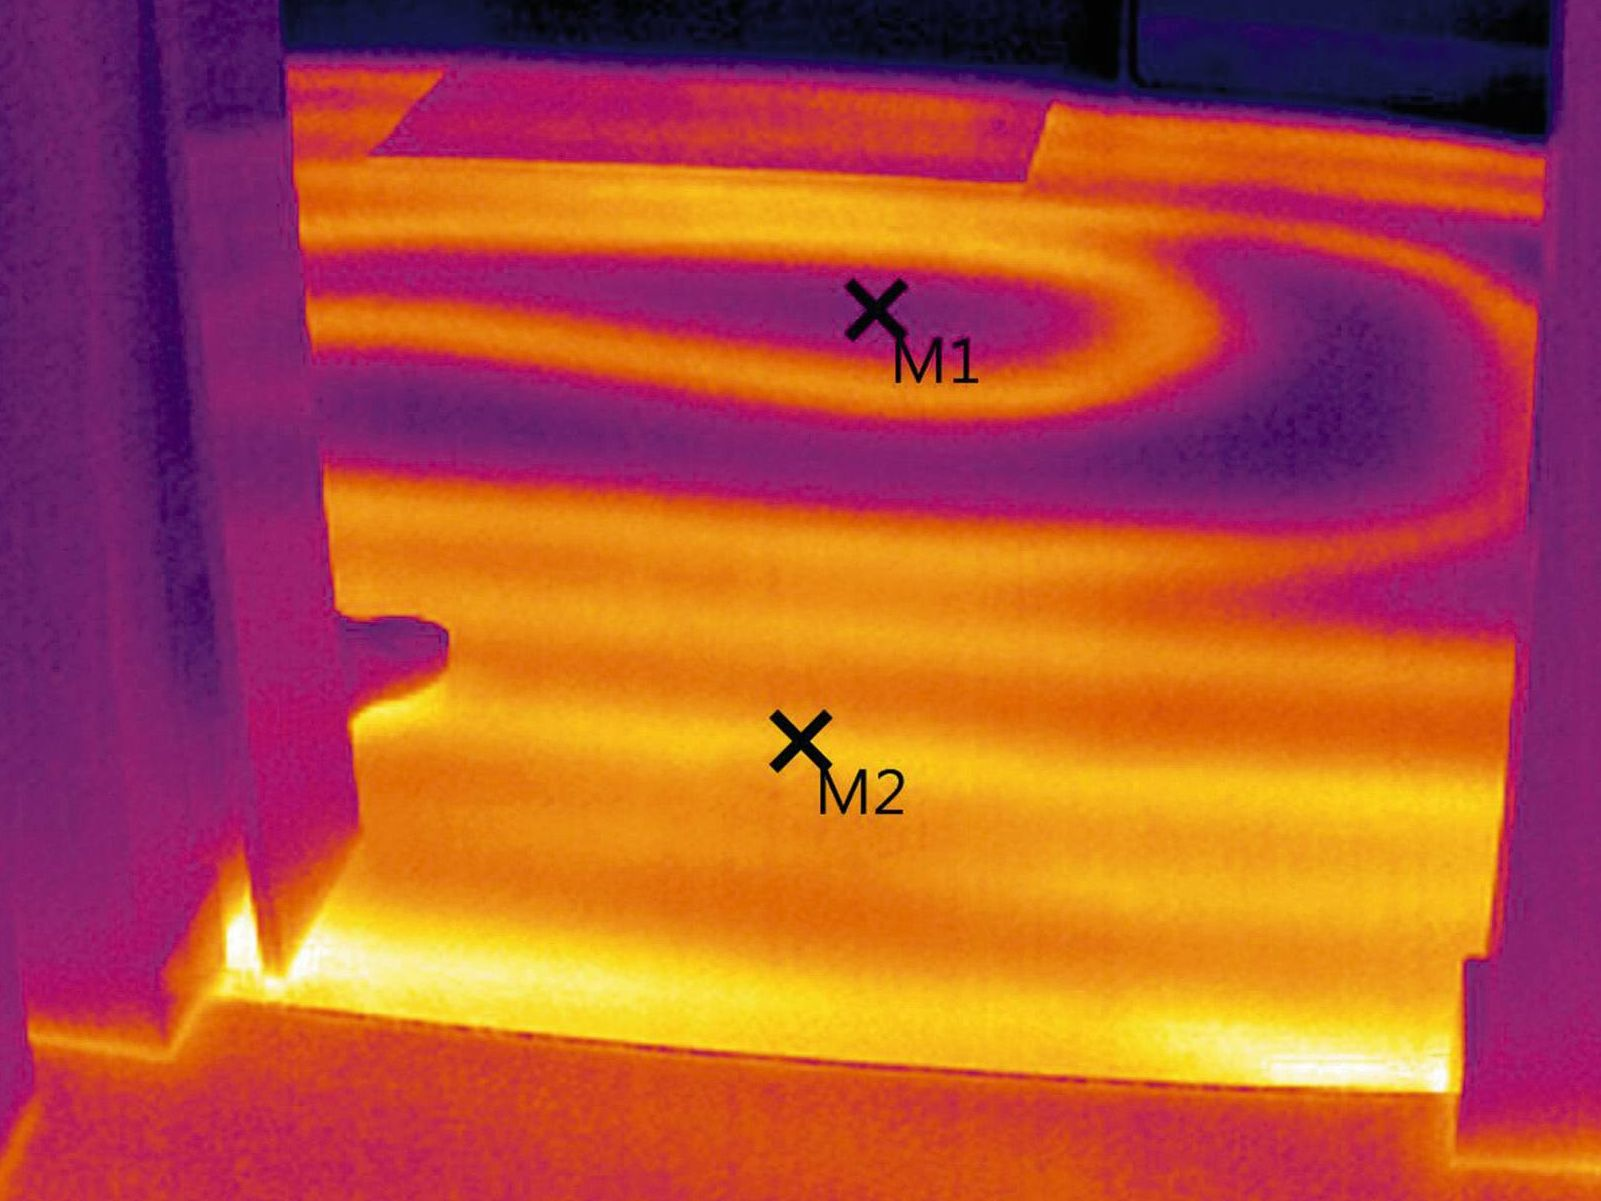 Thermal image underfloor heating